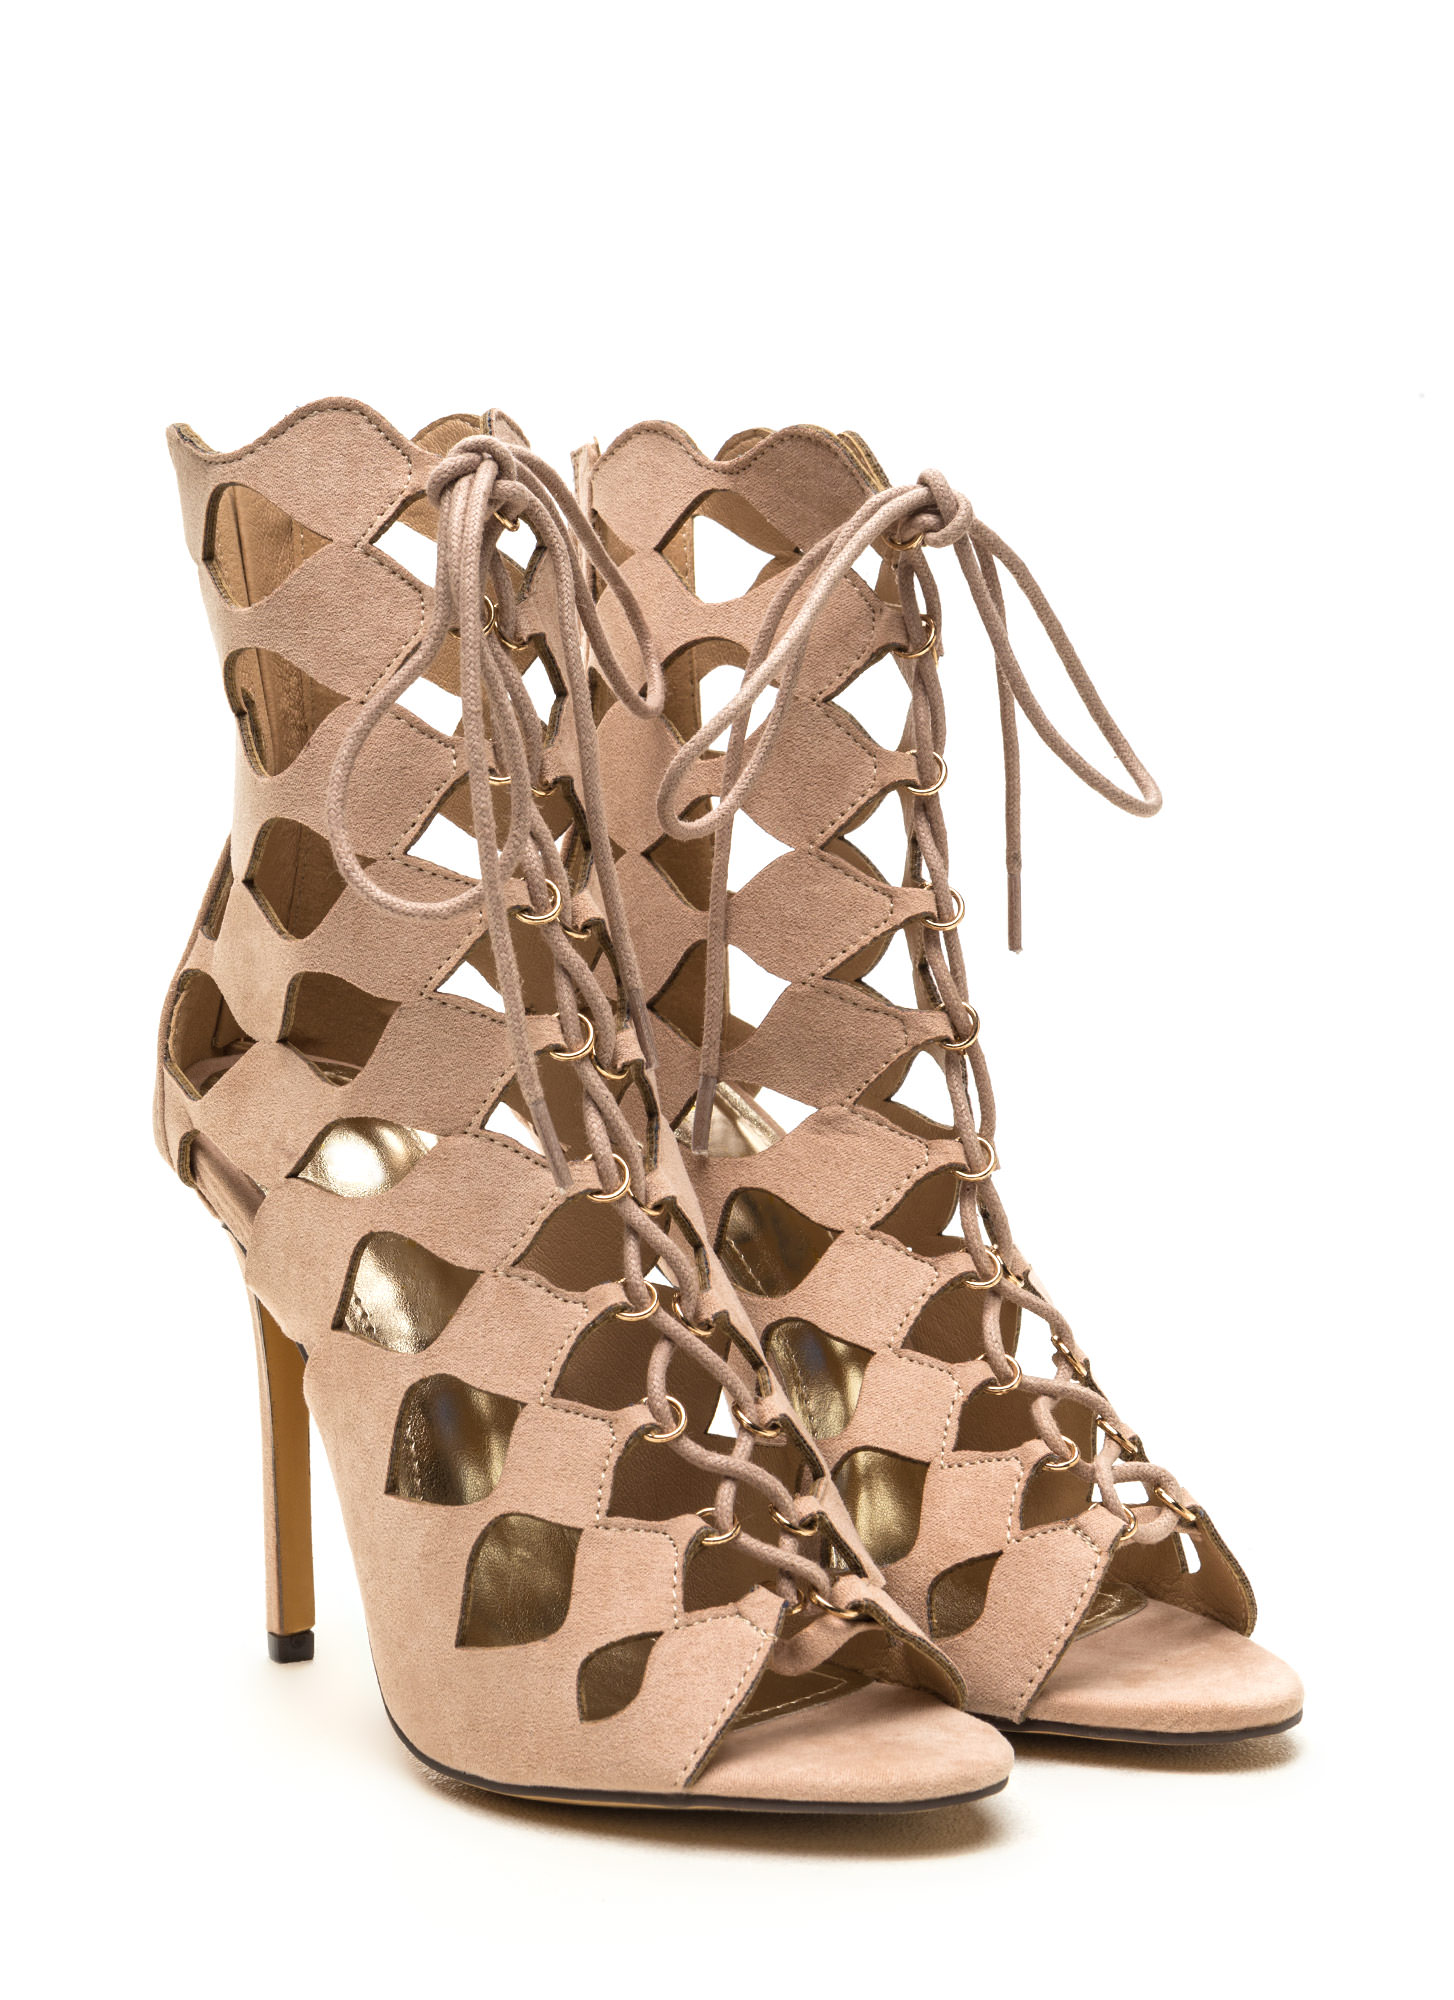 Chic Exposure Caged Cut-Out Heels NUDE (Final Sale)